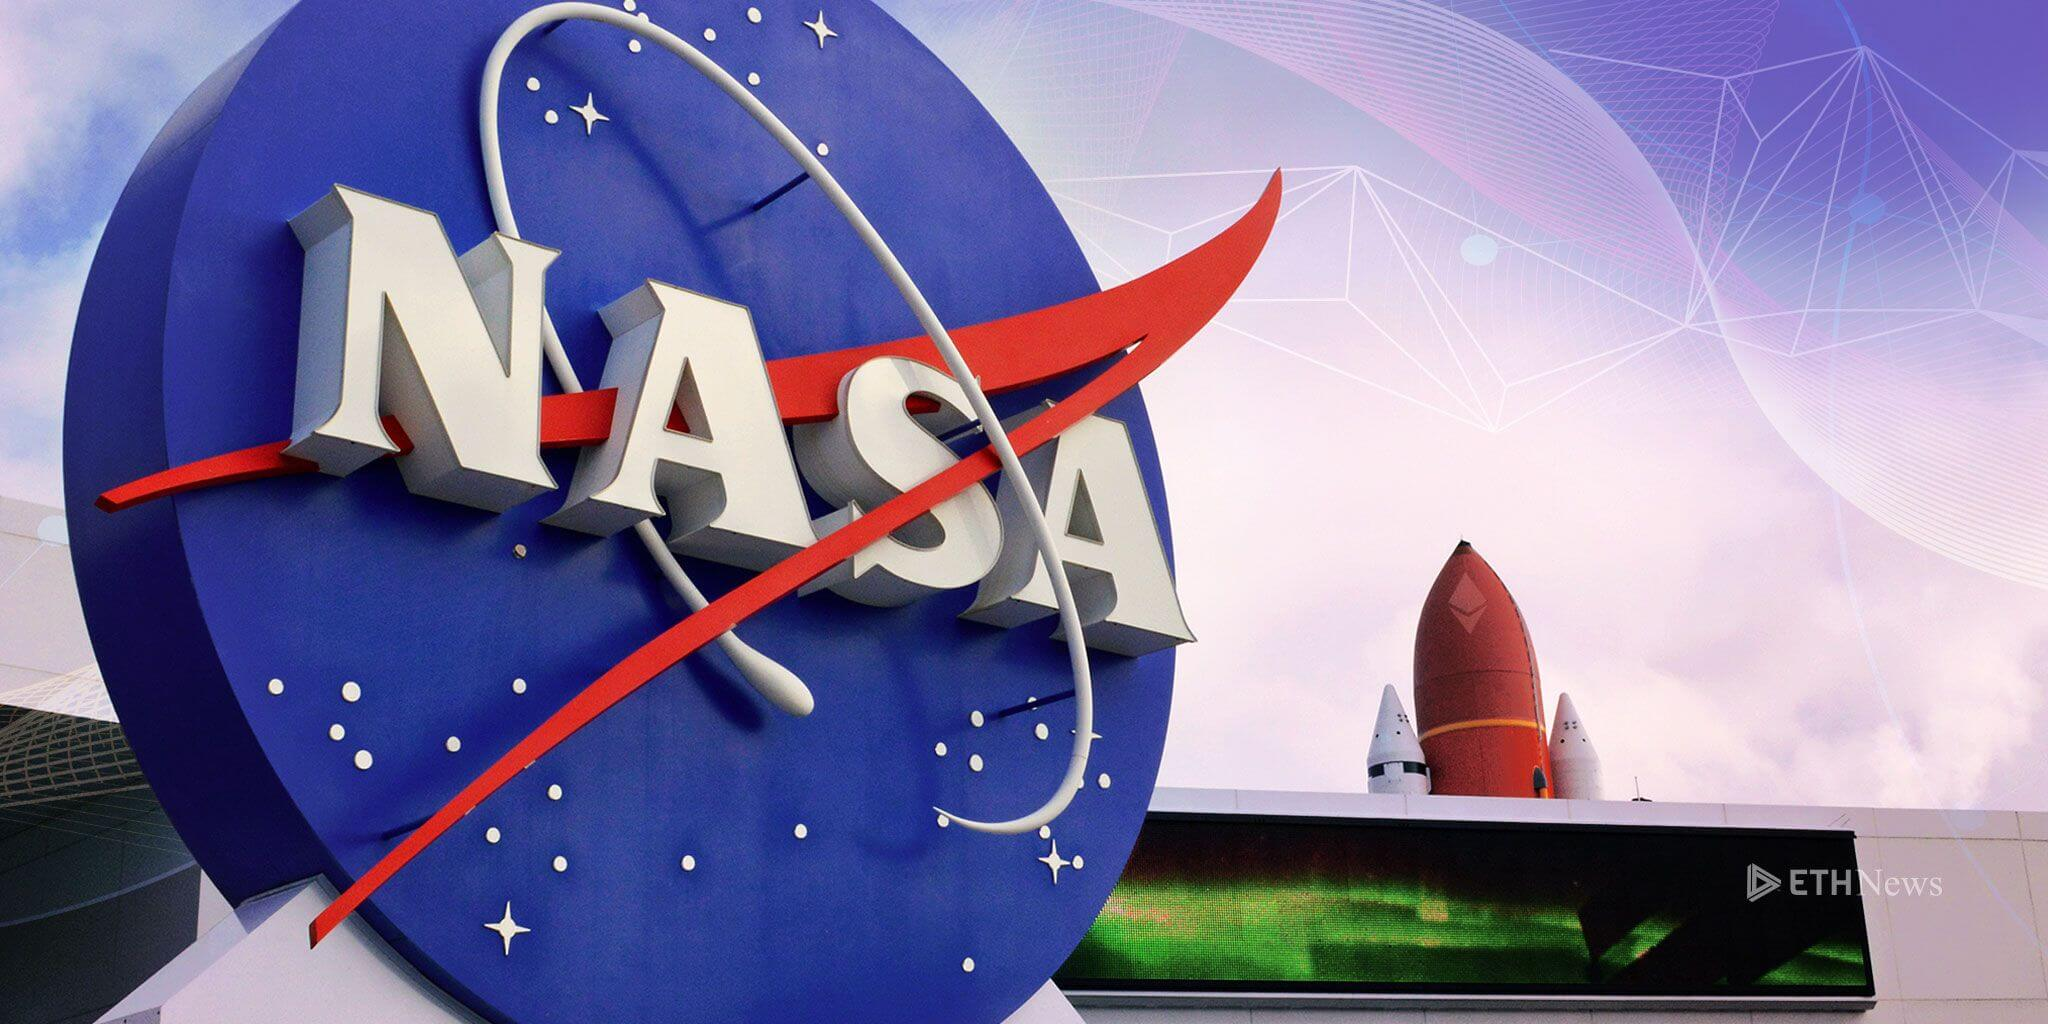 Amazon Alexa assisting NASA become smarter at work